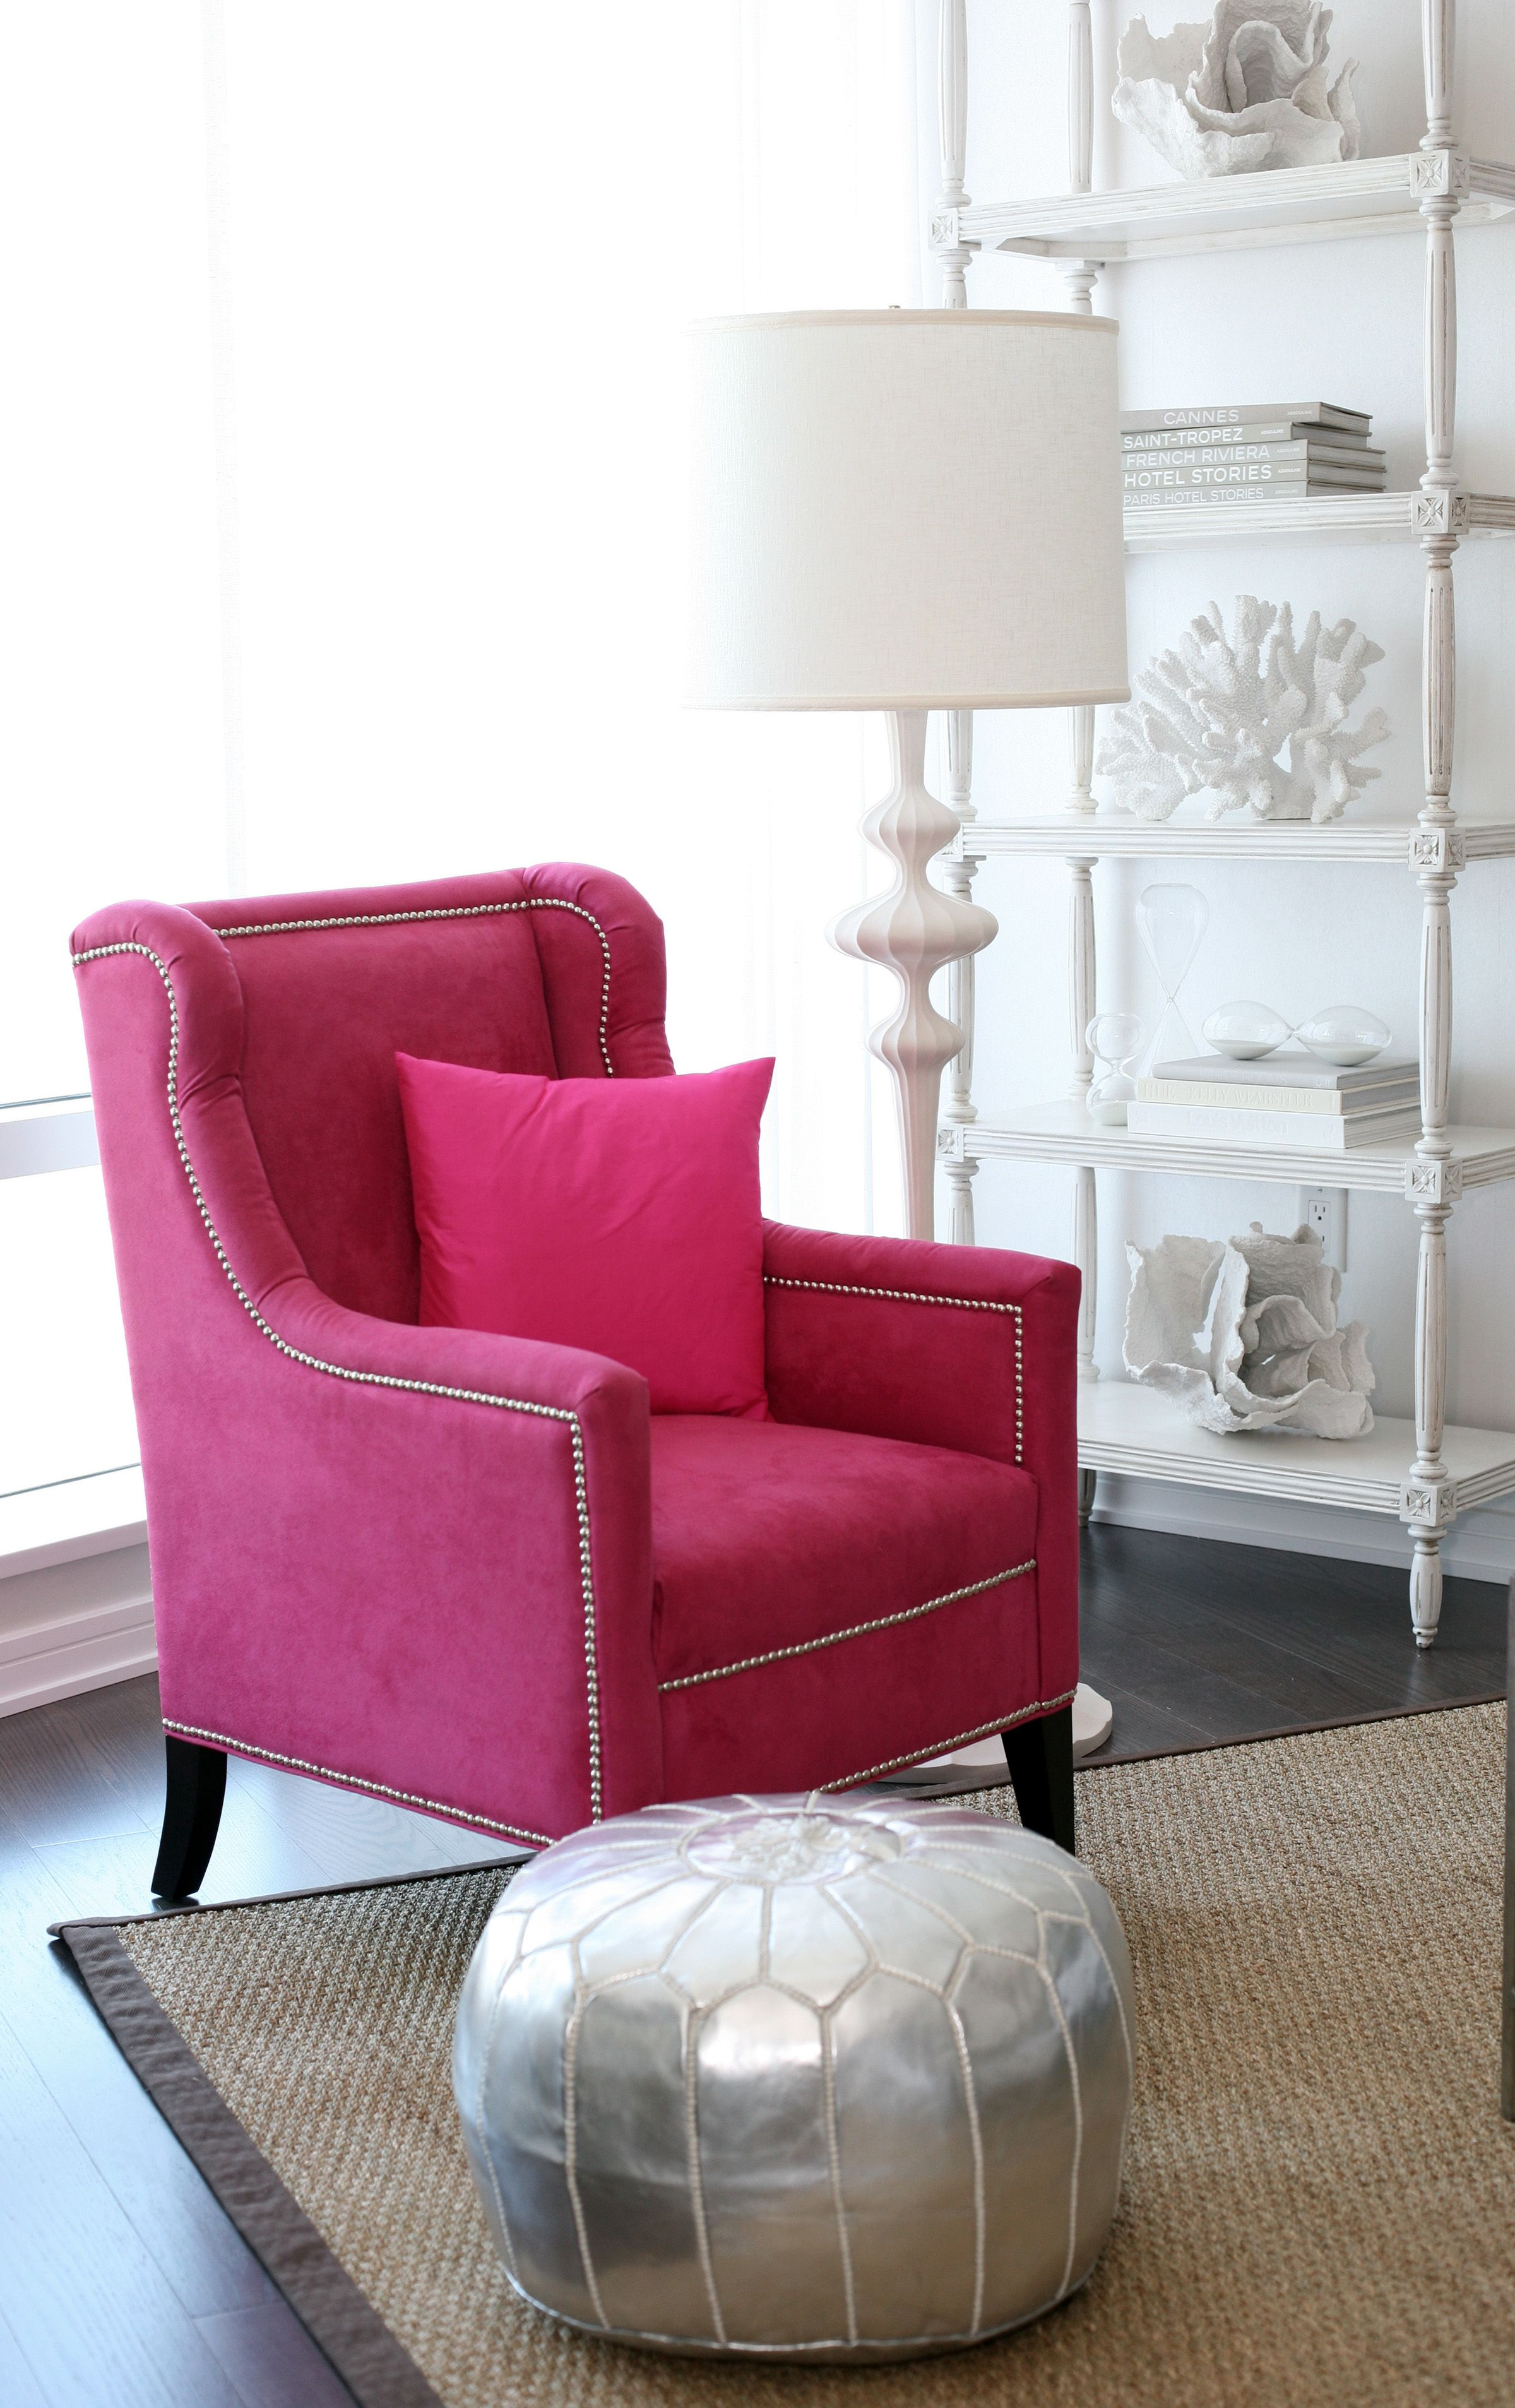 Hot Pink Chair Shiny Silver Ottoman Actually All Of It I Ll